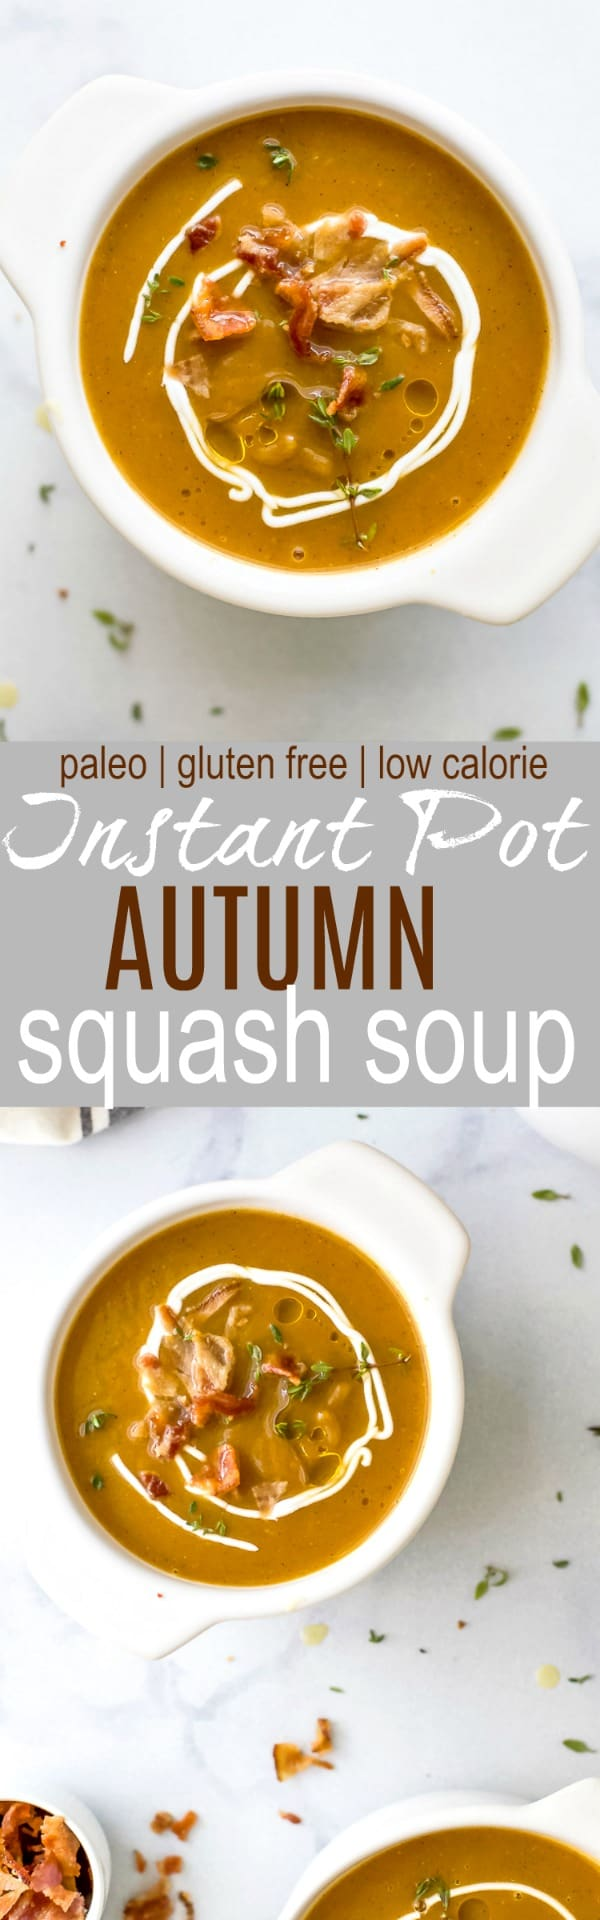 Paleo Instant Pot Autumn Squash Soup, filled with butternut squash, acorn squash, tummy warming spices and topped with bacon. An easy creamy squash soup that's guaranteed to be the star of the fall! #glutenfree